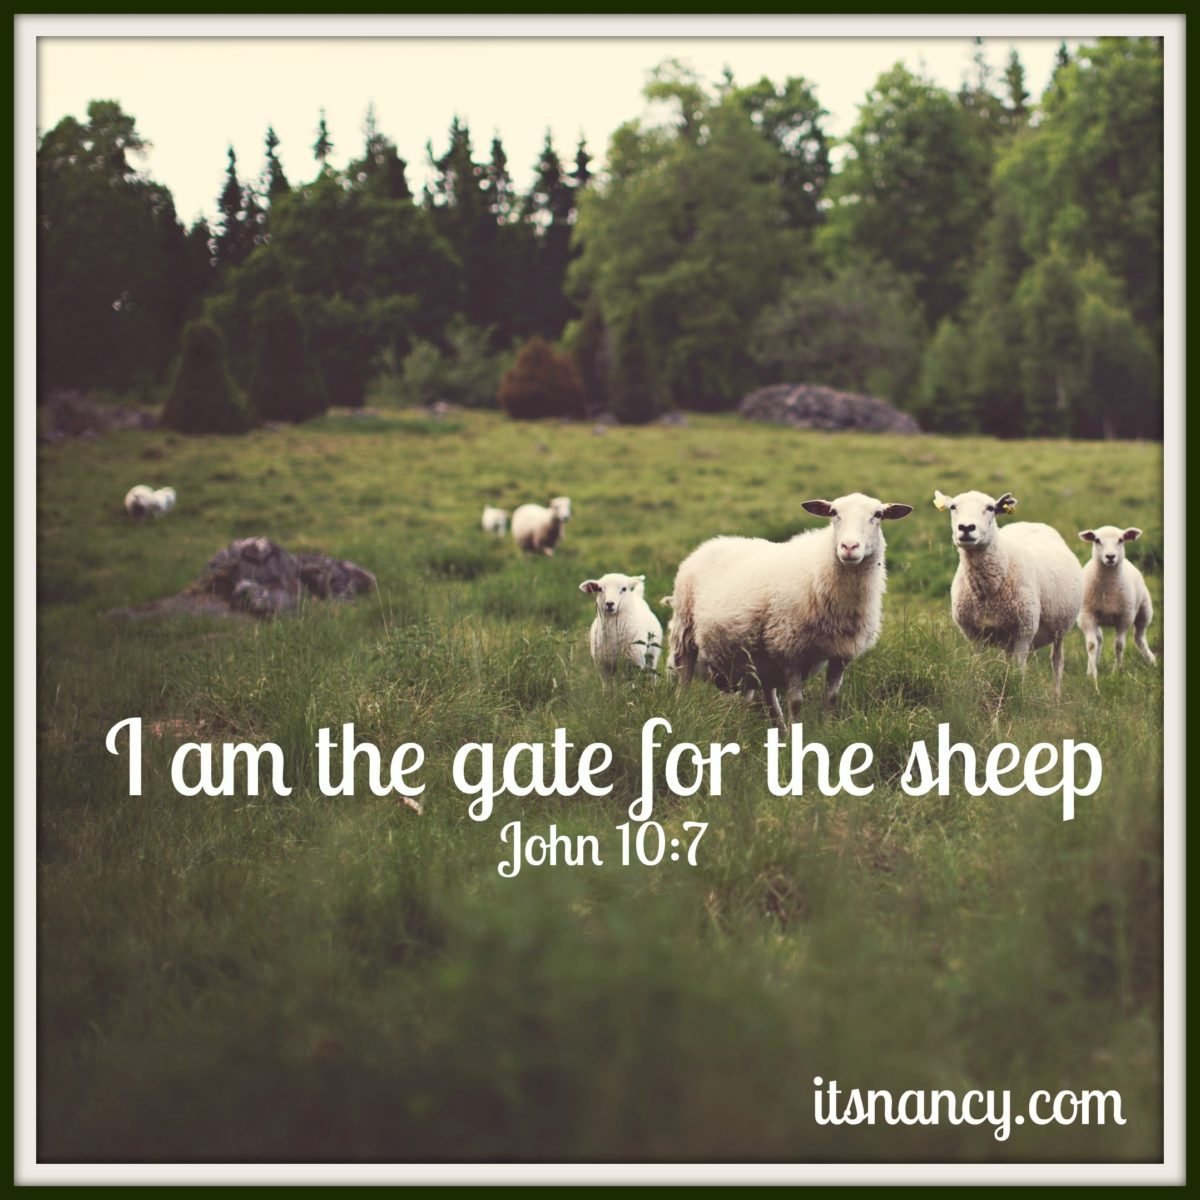 I Am the Gate for the Sheep